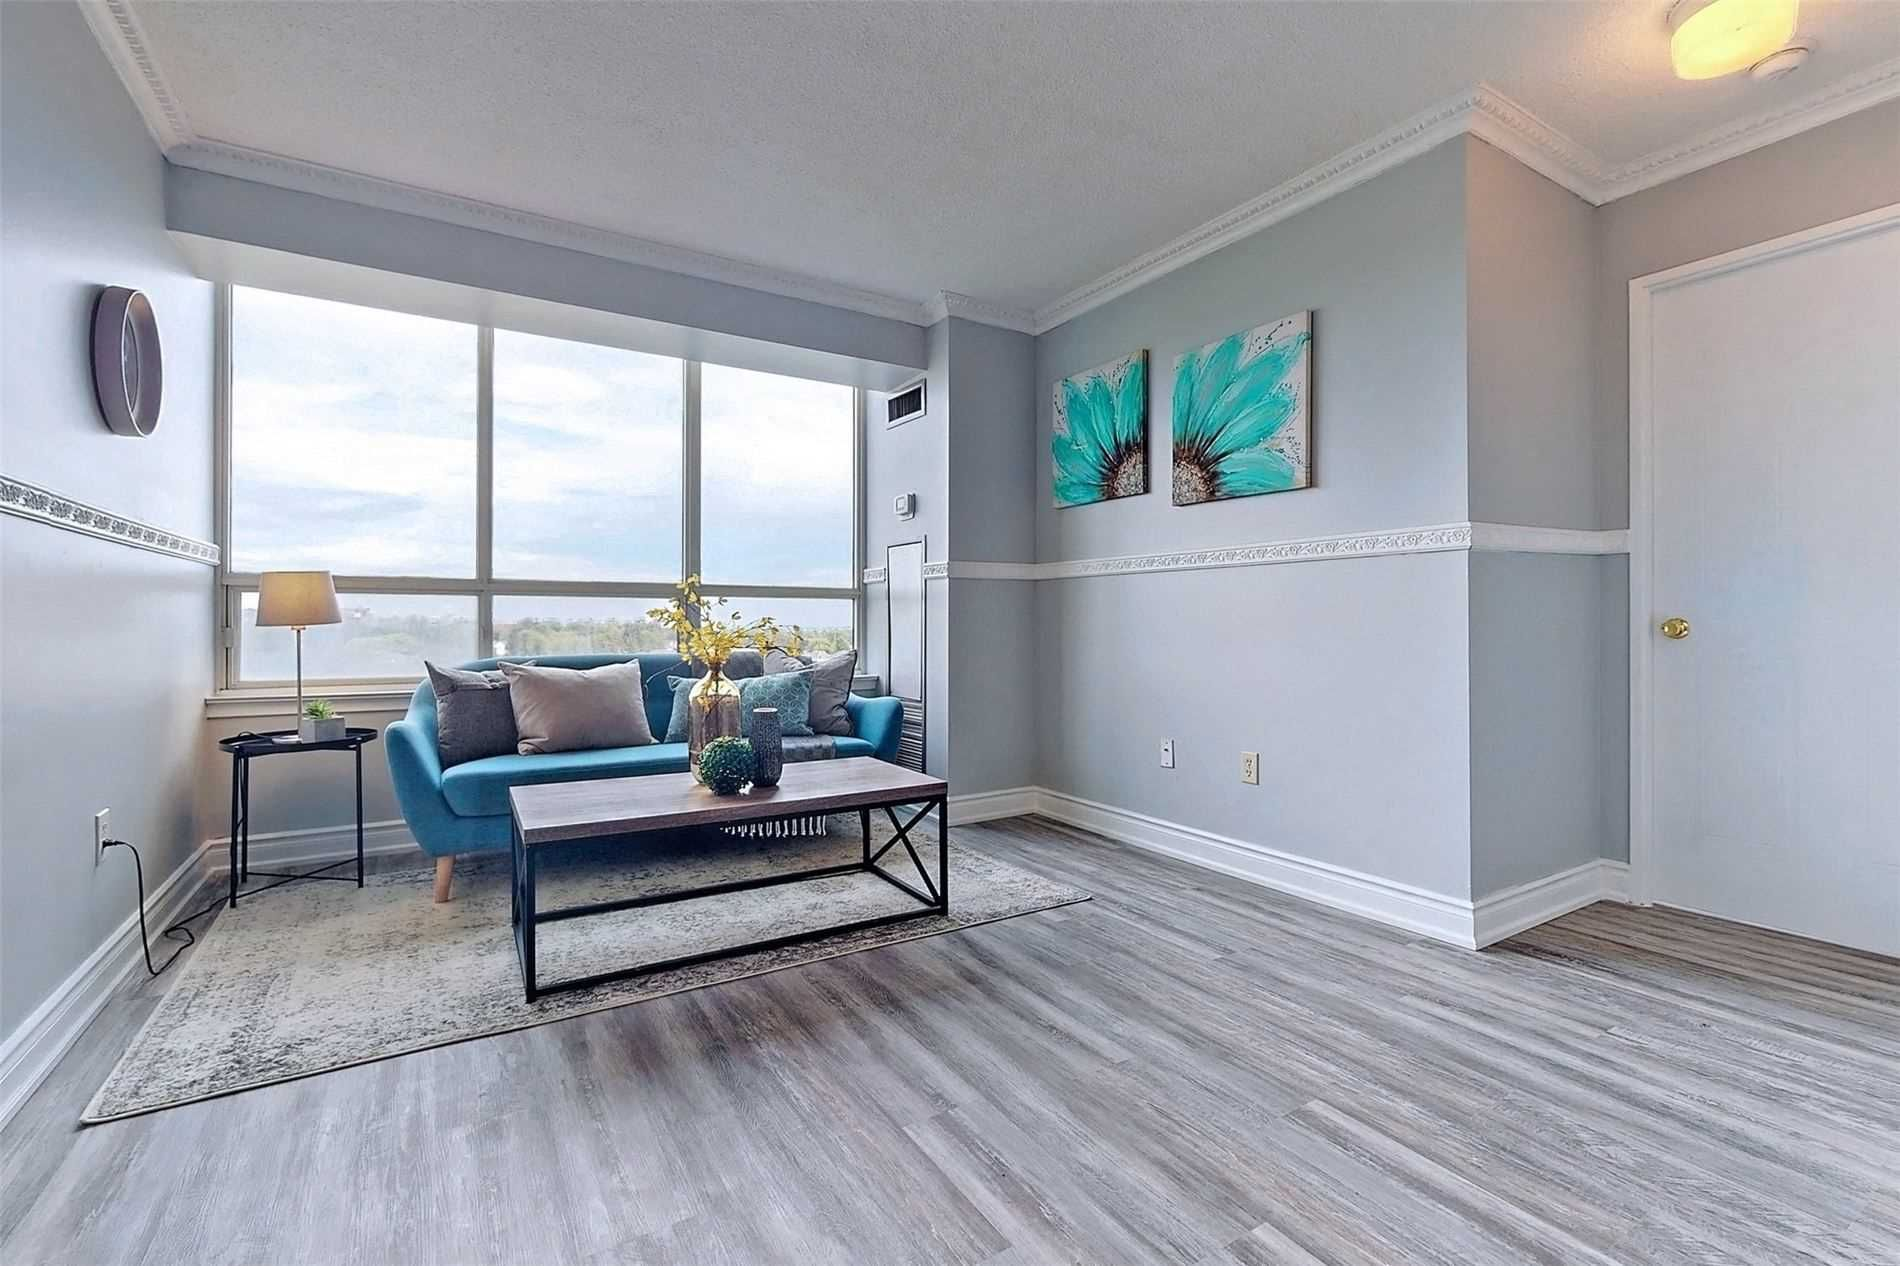 3 Greystone Walk Dr, unit 928 for sale in Toronto - image #2